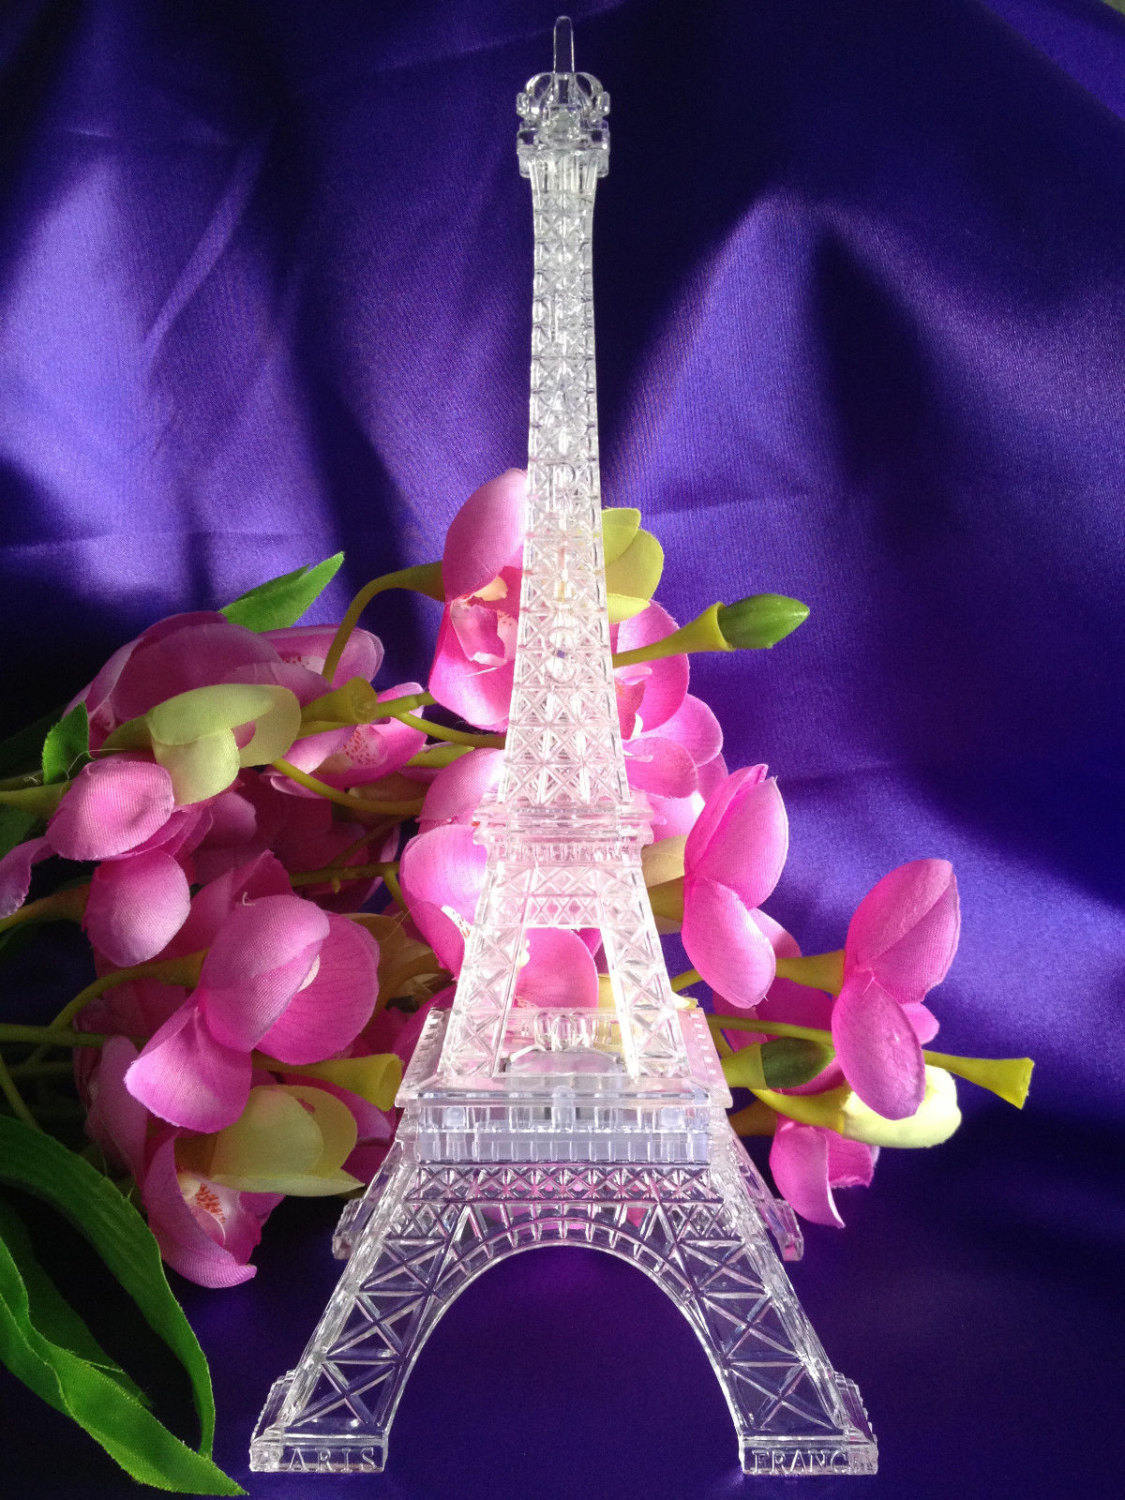 Led Eiffel Tower Light Up Statue Mulit Color Changing Wedding